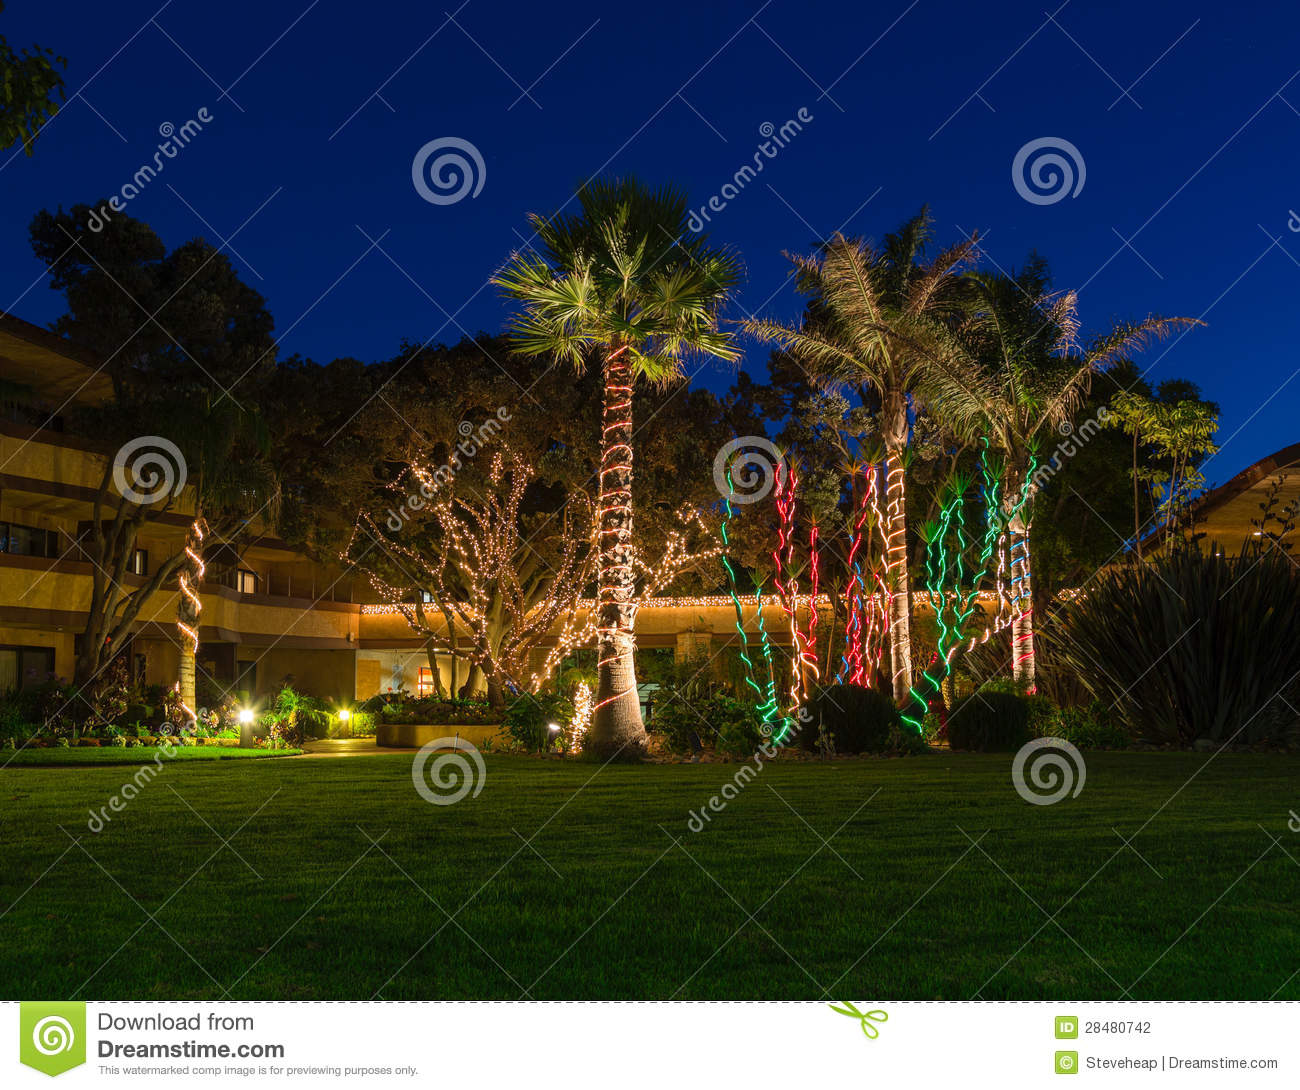 Christmas Lights On Palm Trees Stock Photo Image 28480742